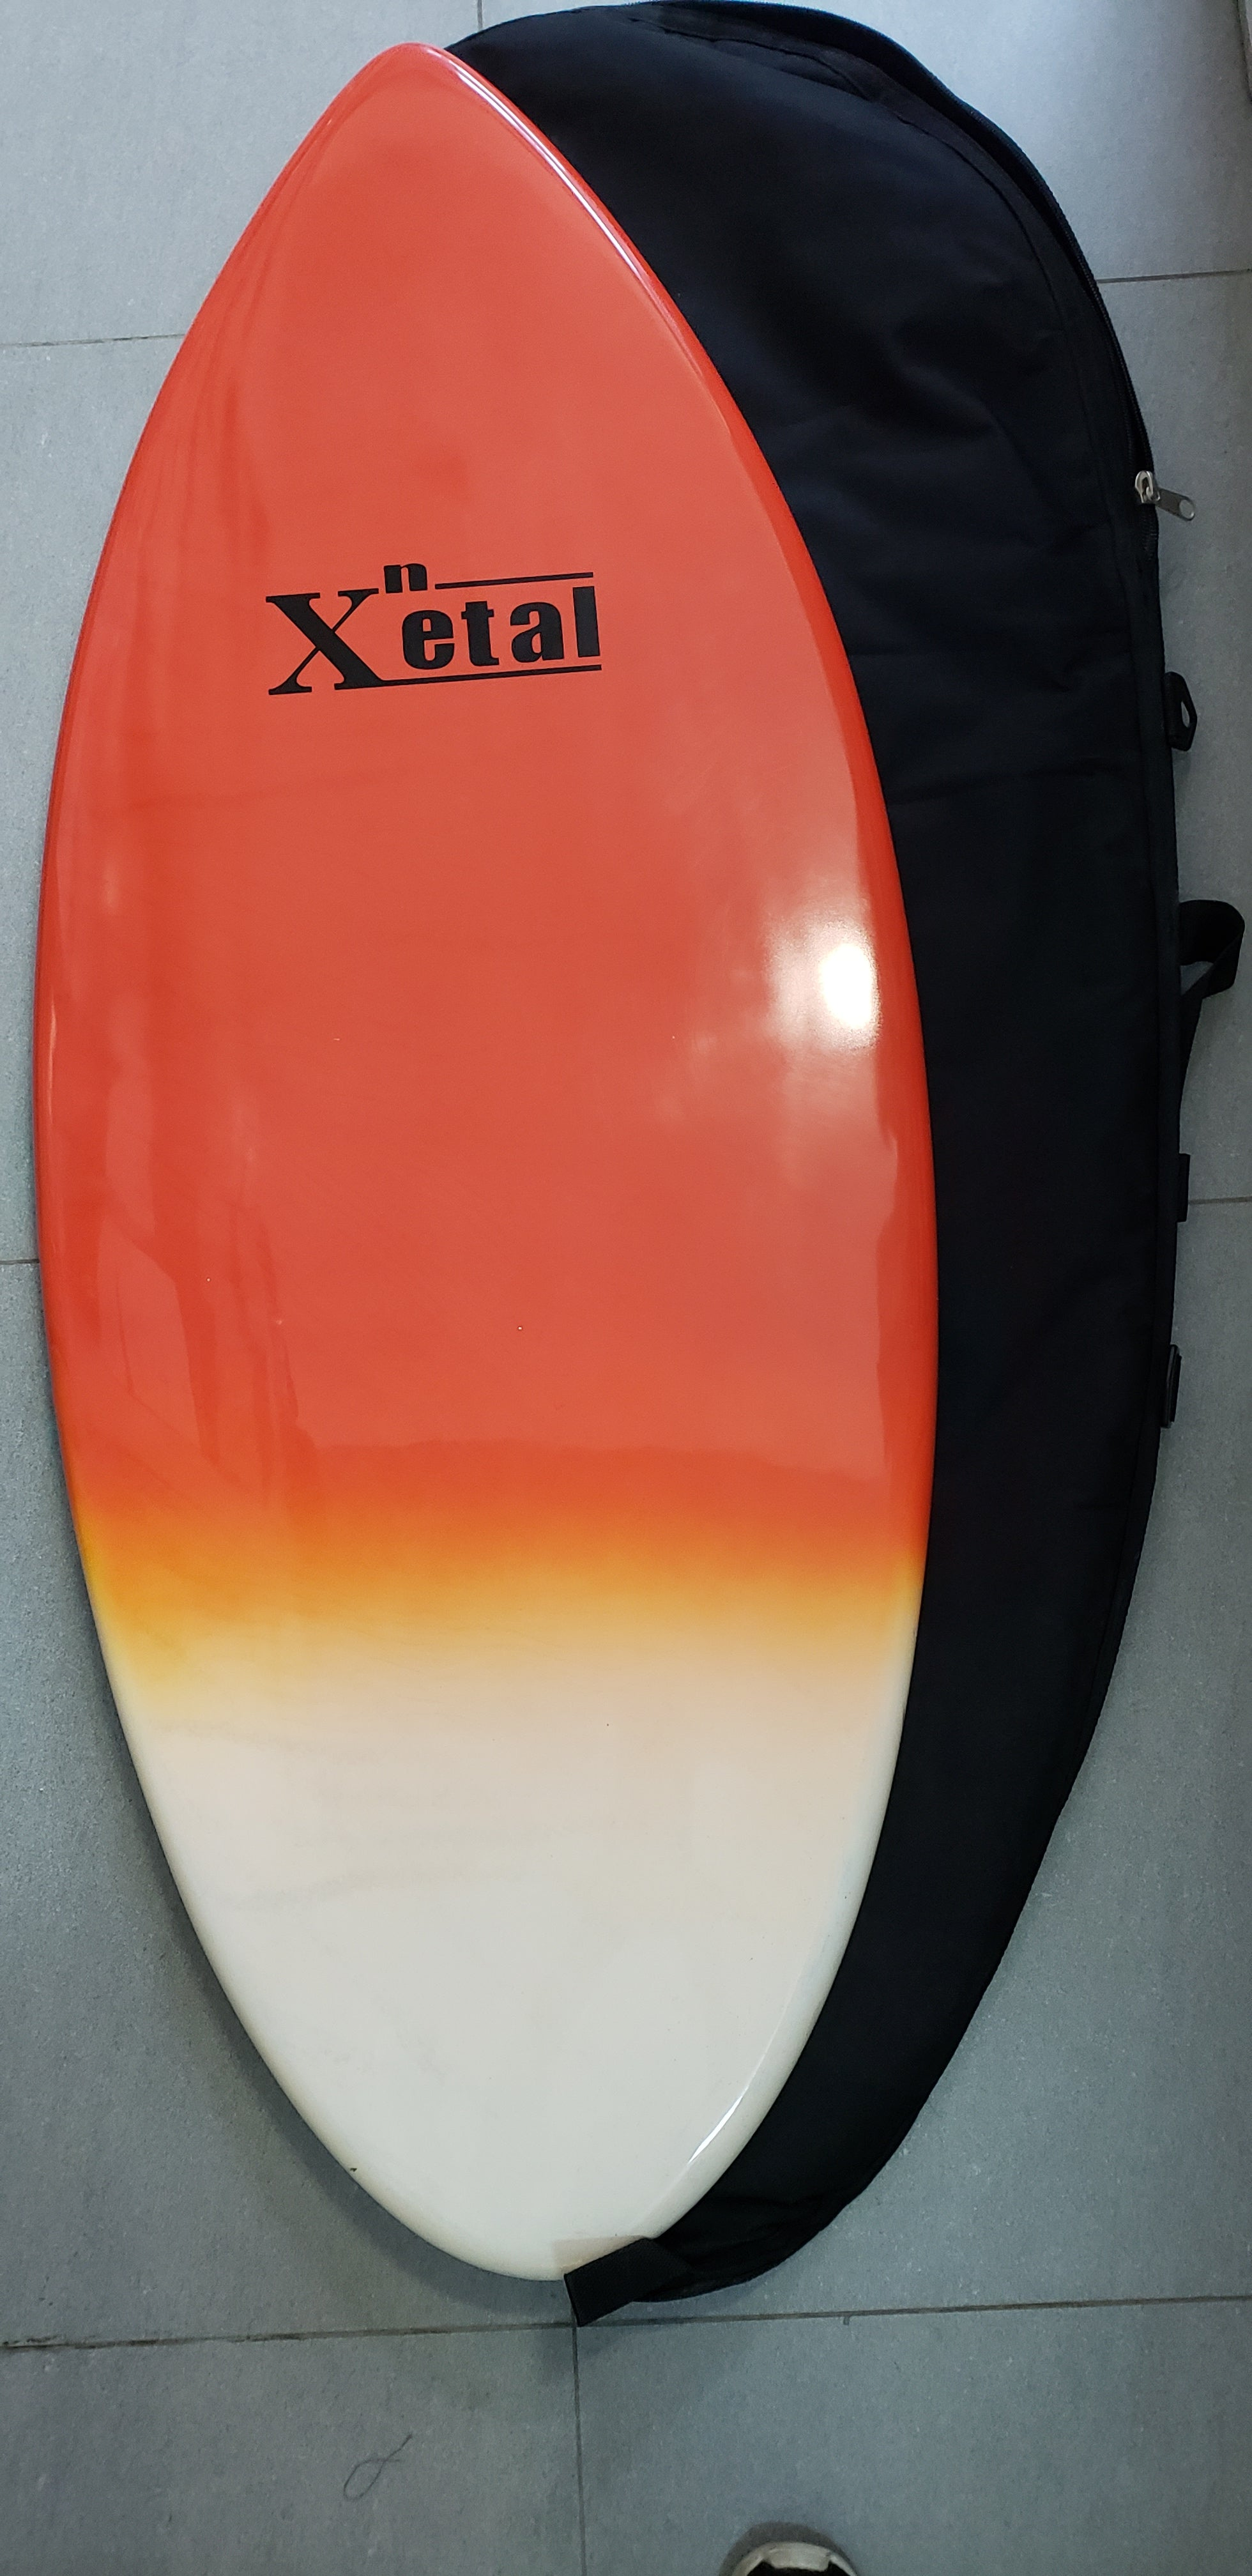 X'etal Skimboard w/bag (Self-pick-up and slightly damage on the back of the skimboard)